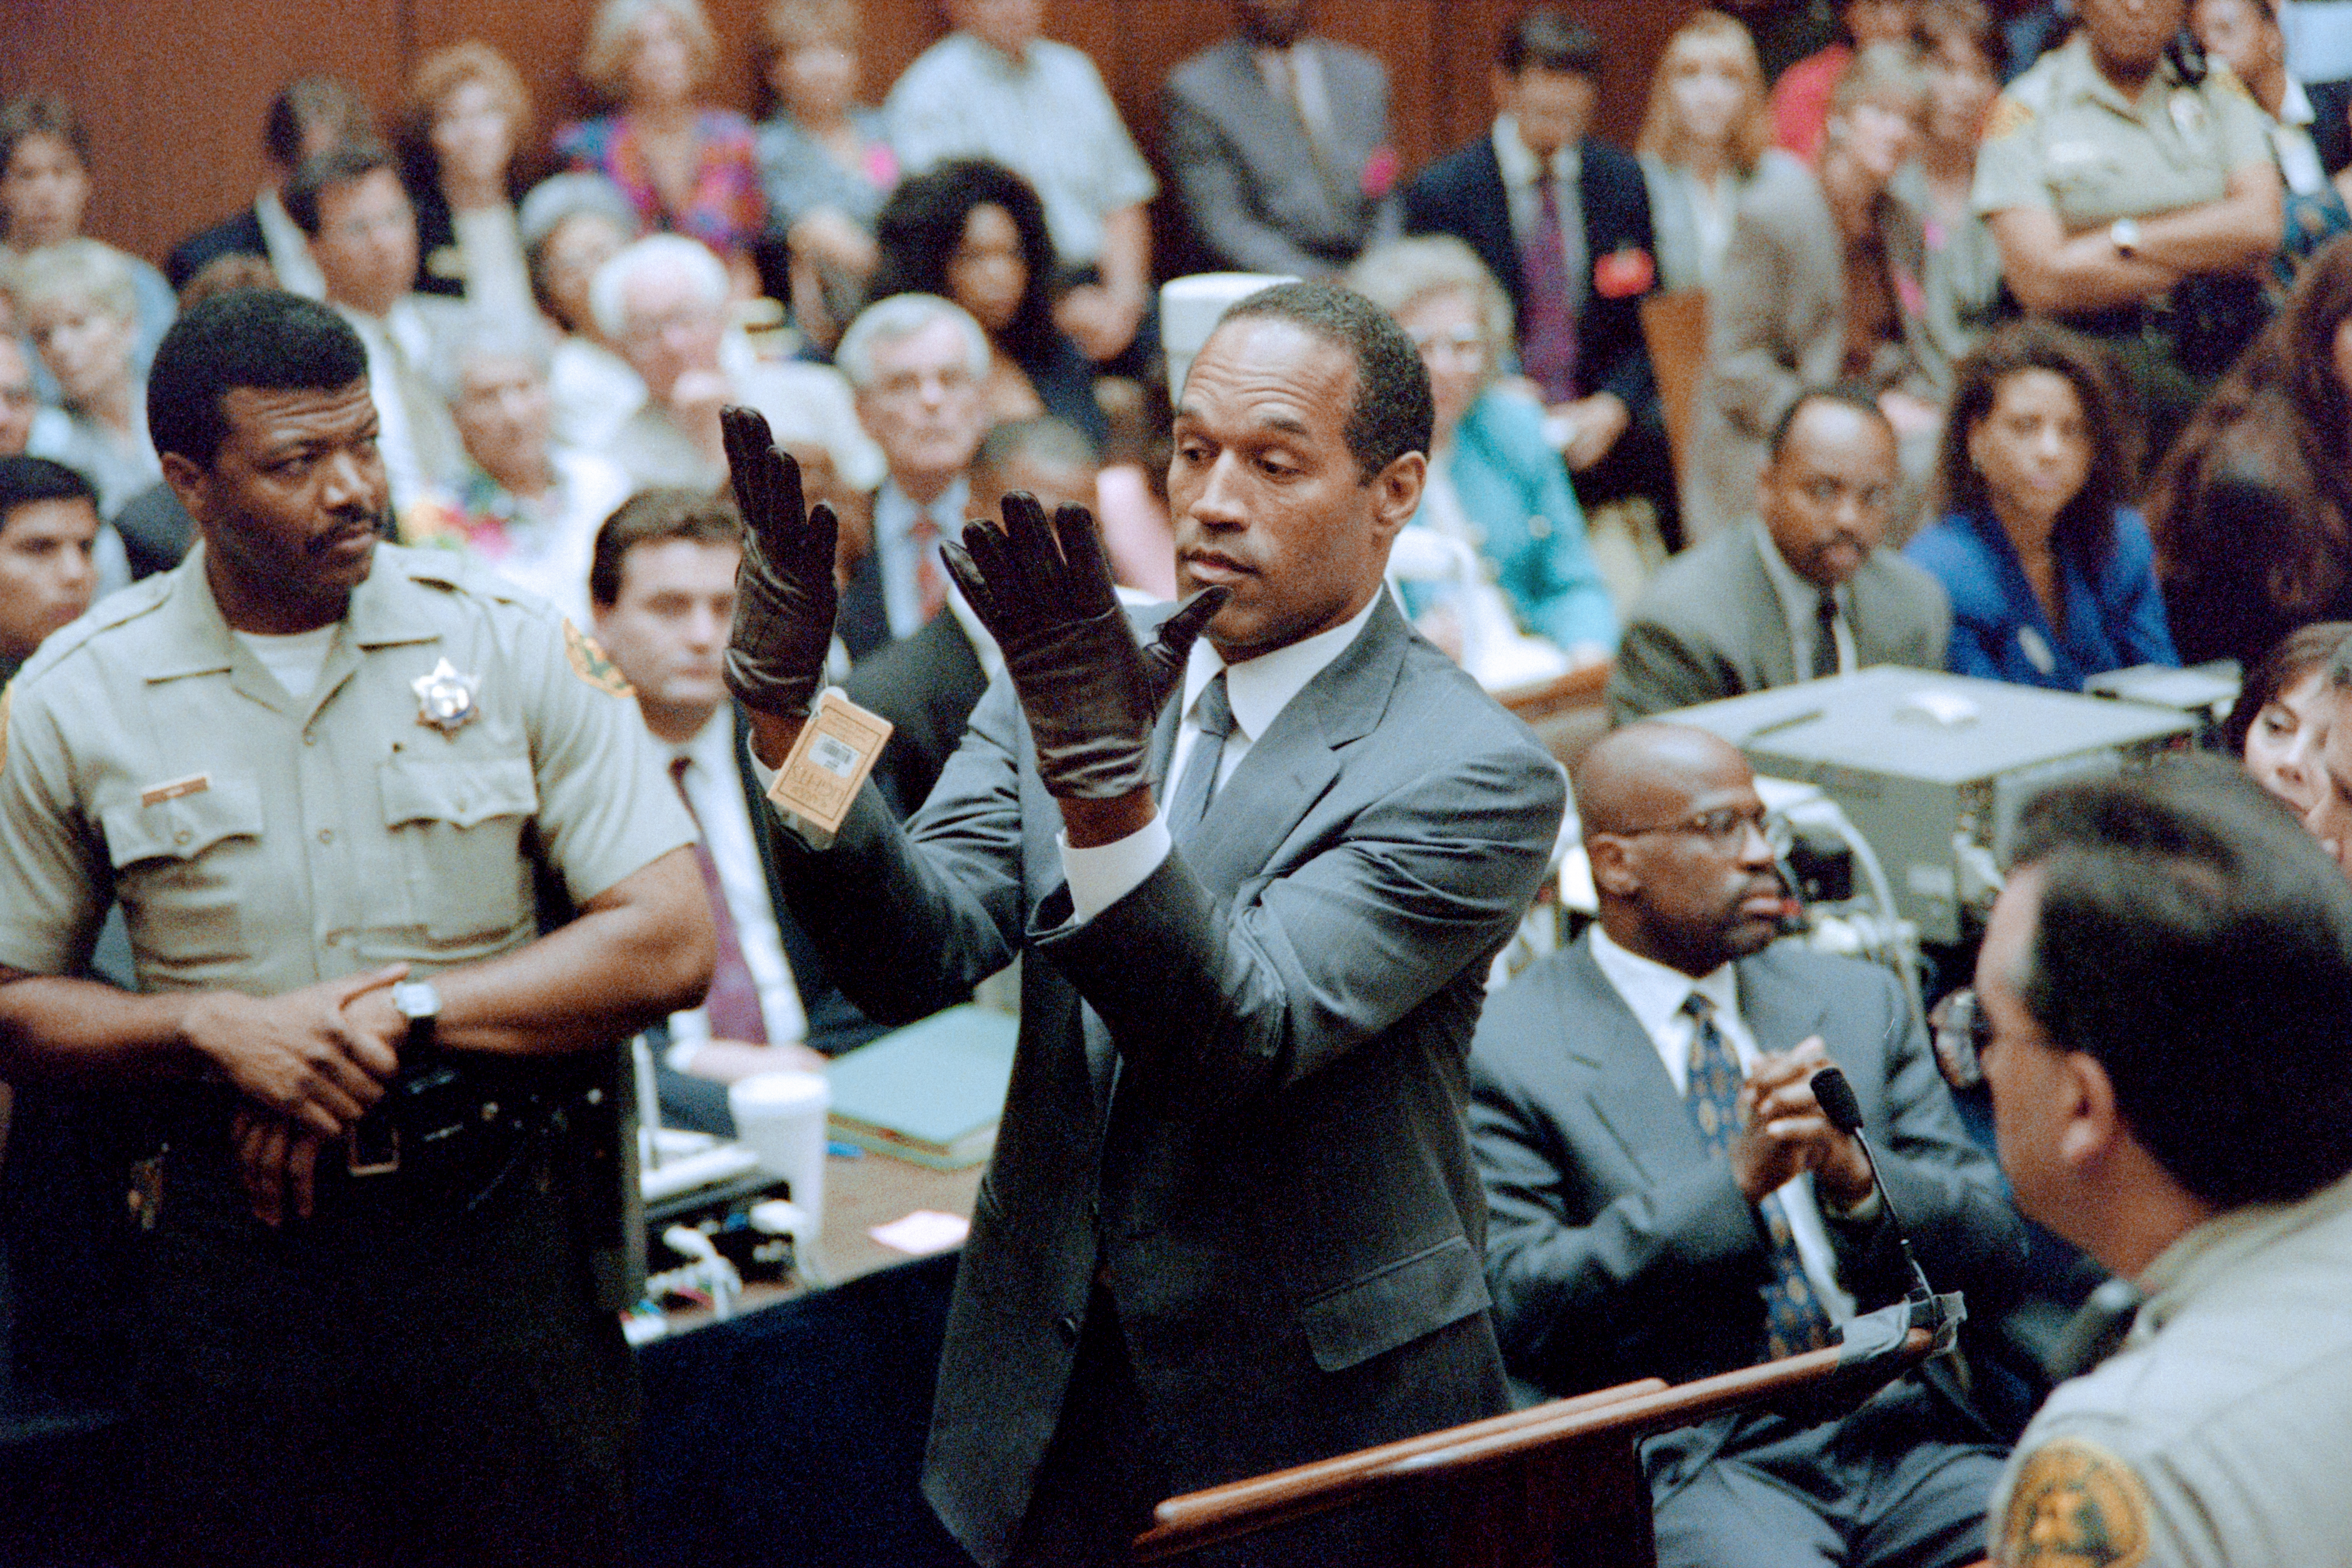 O.J. Simpson Could Make a Killing Signing Autographs